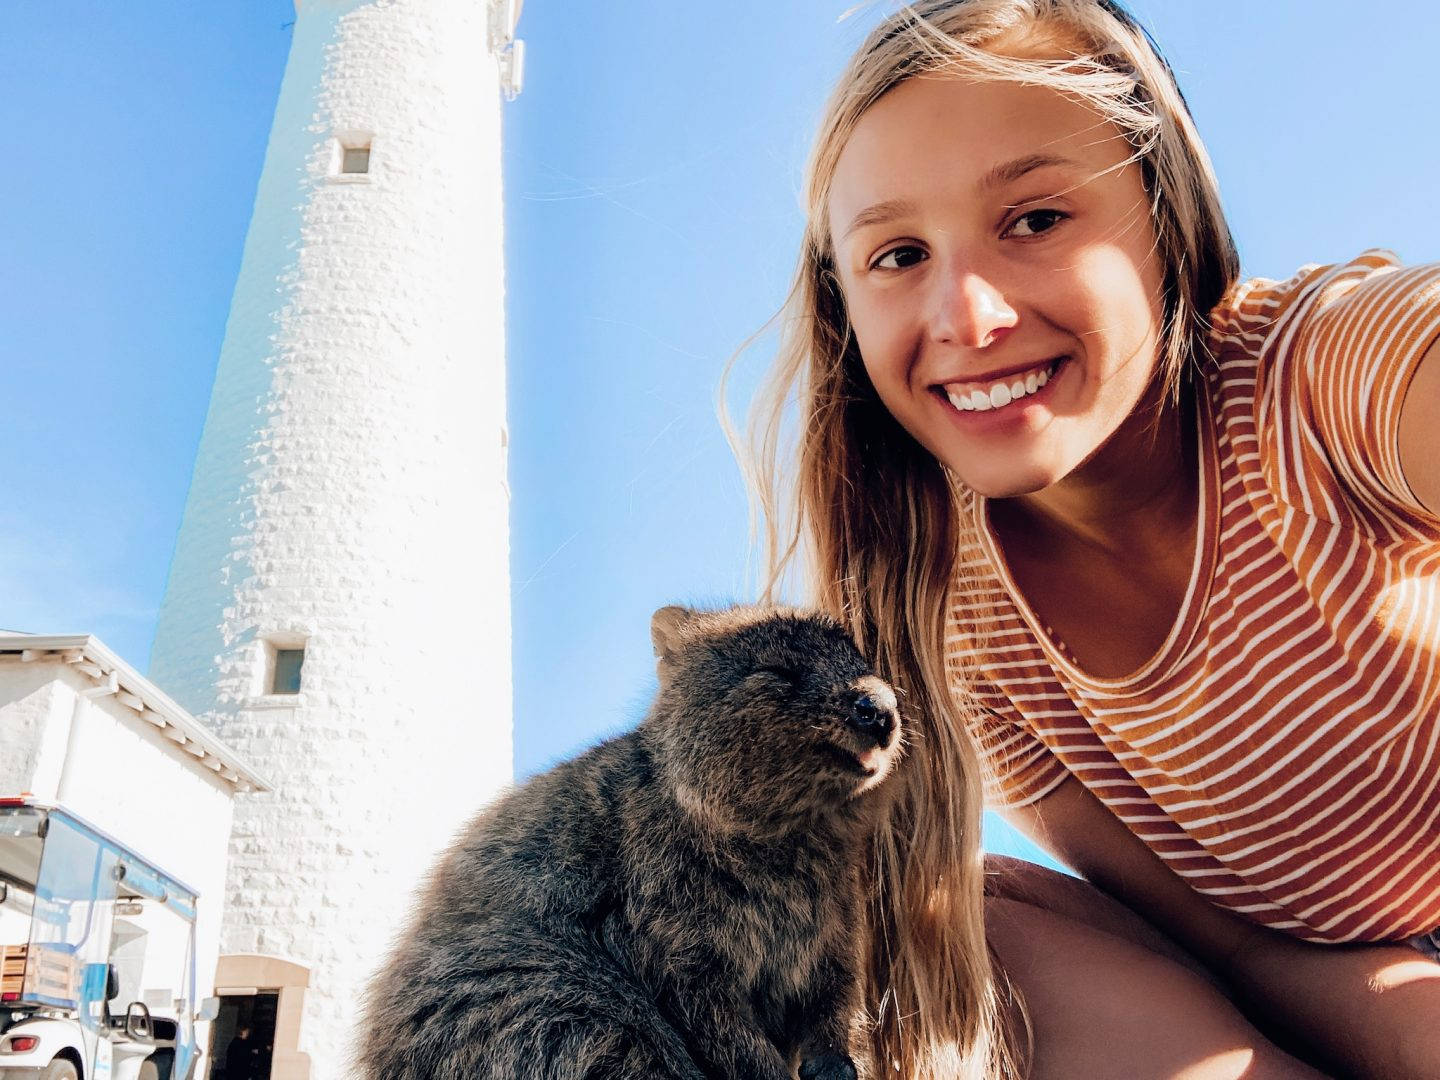 Posing with a quokka for a selfie on Rottnest Island!